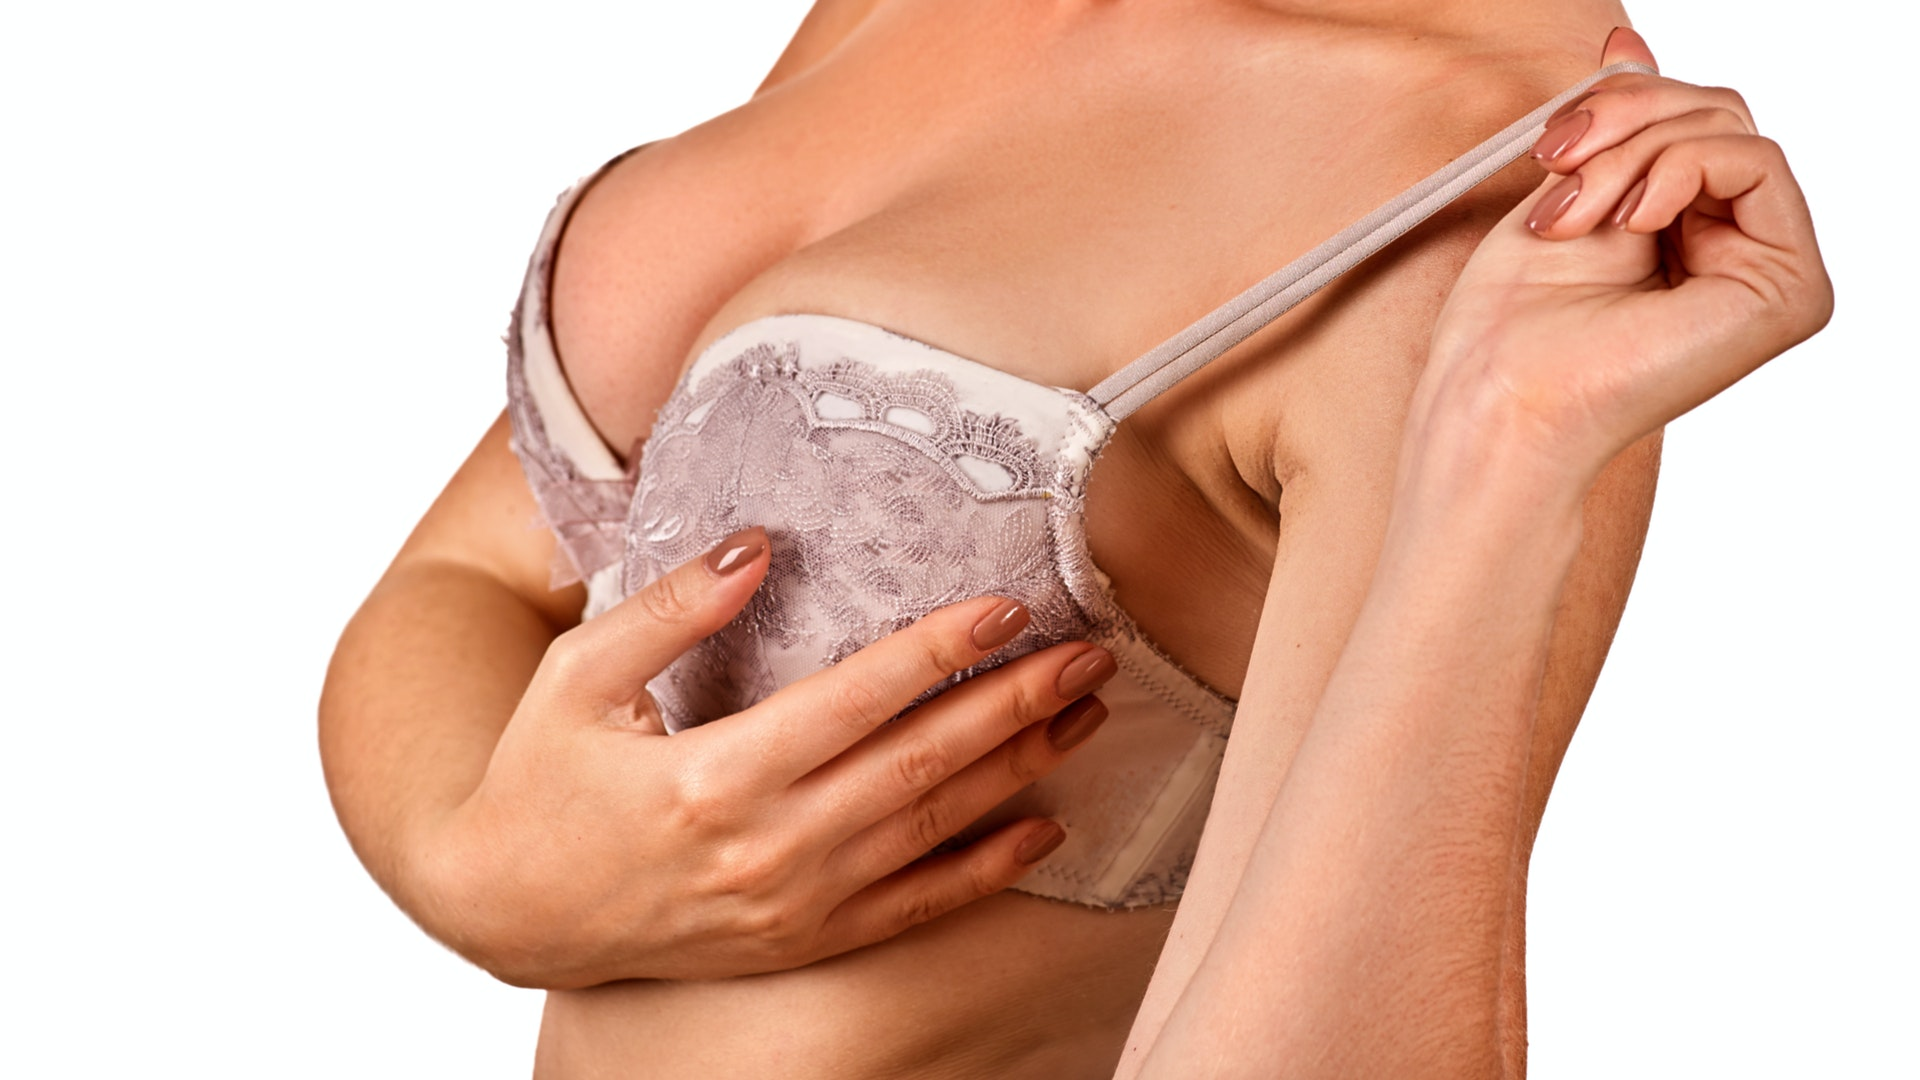 An image depicting a person suffering from breast swelling symptoms